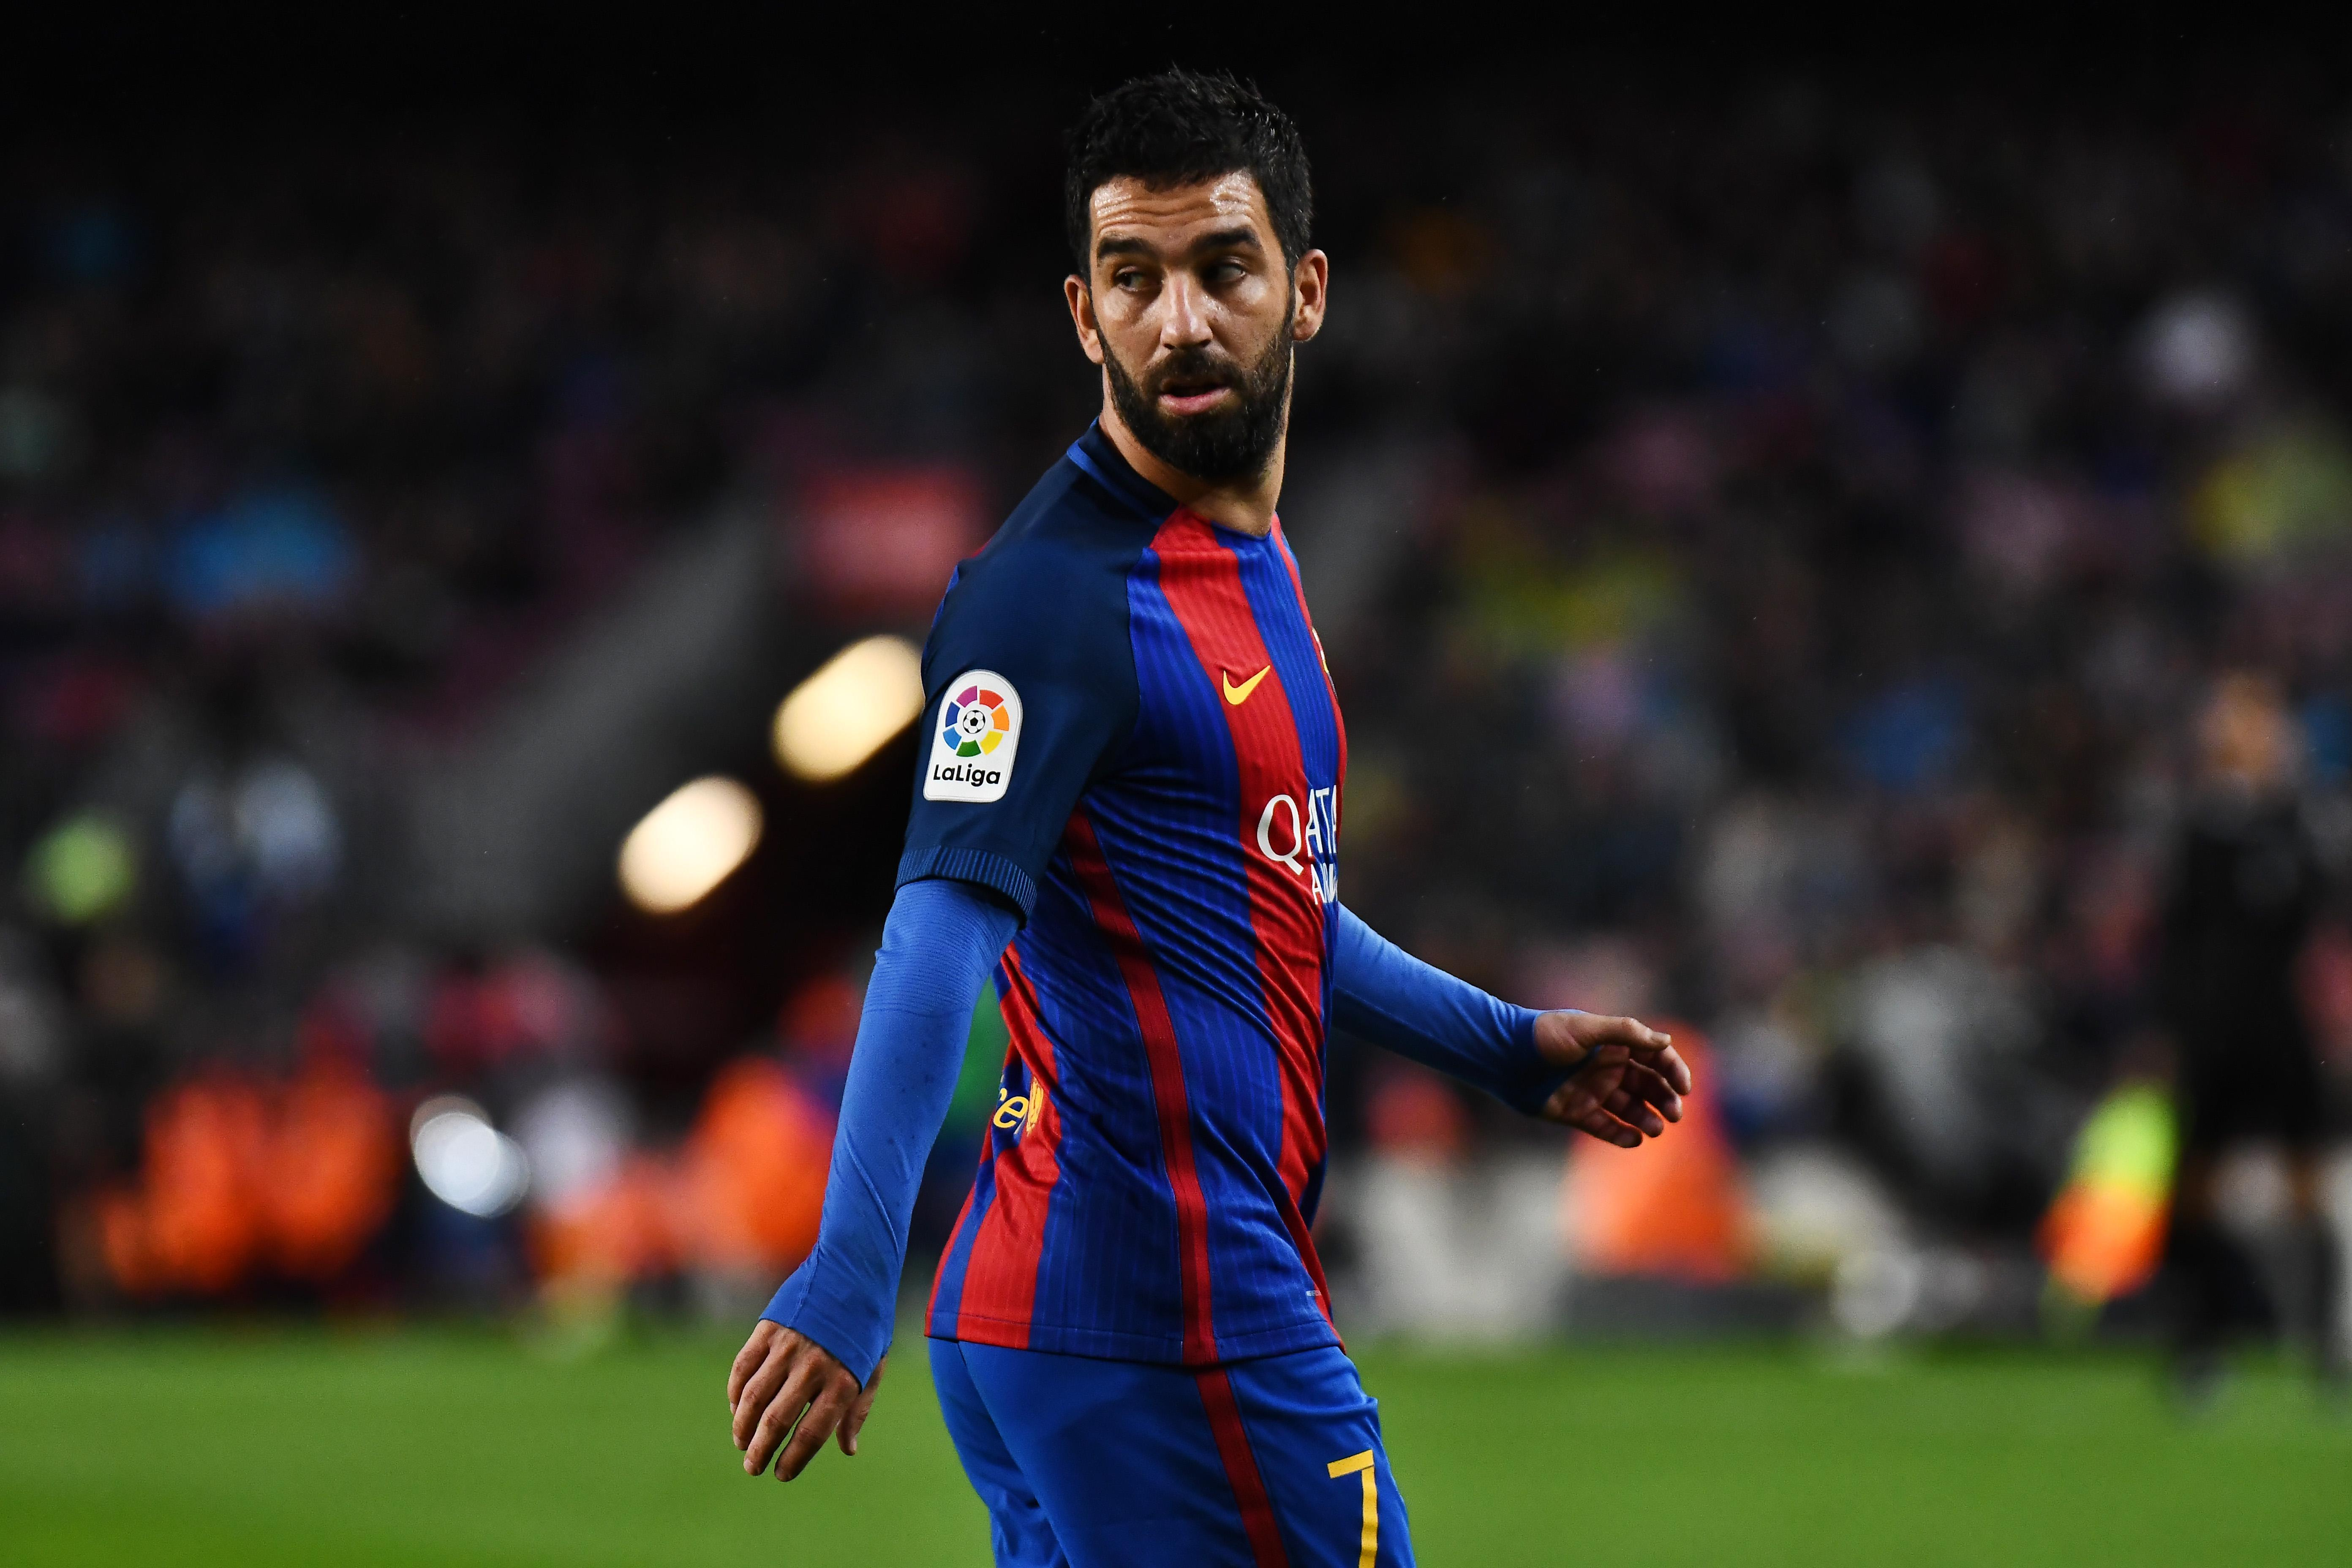 Barcelona outcast Arda Turan in talks to join MLS outfit Chicago Fire, as La Liga side plot major January offload